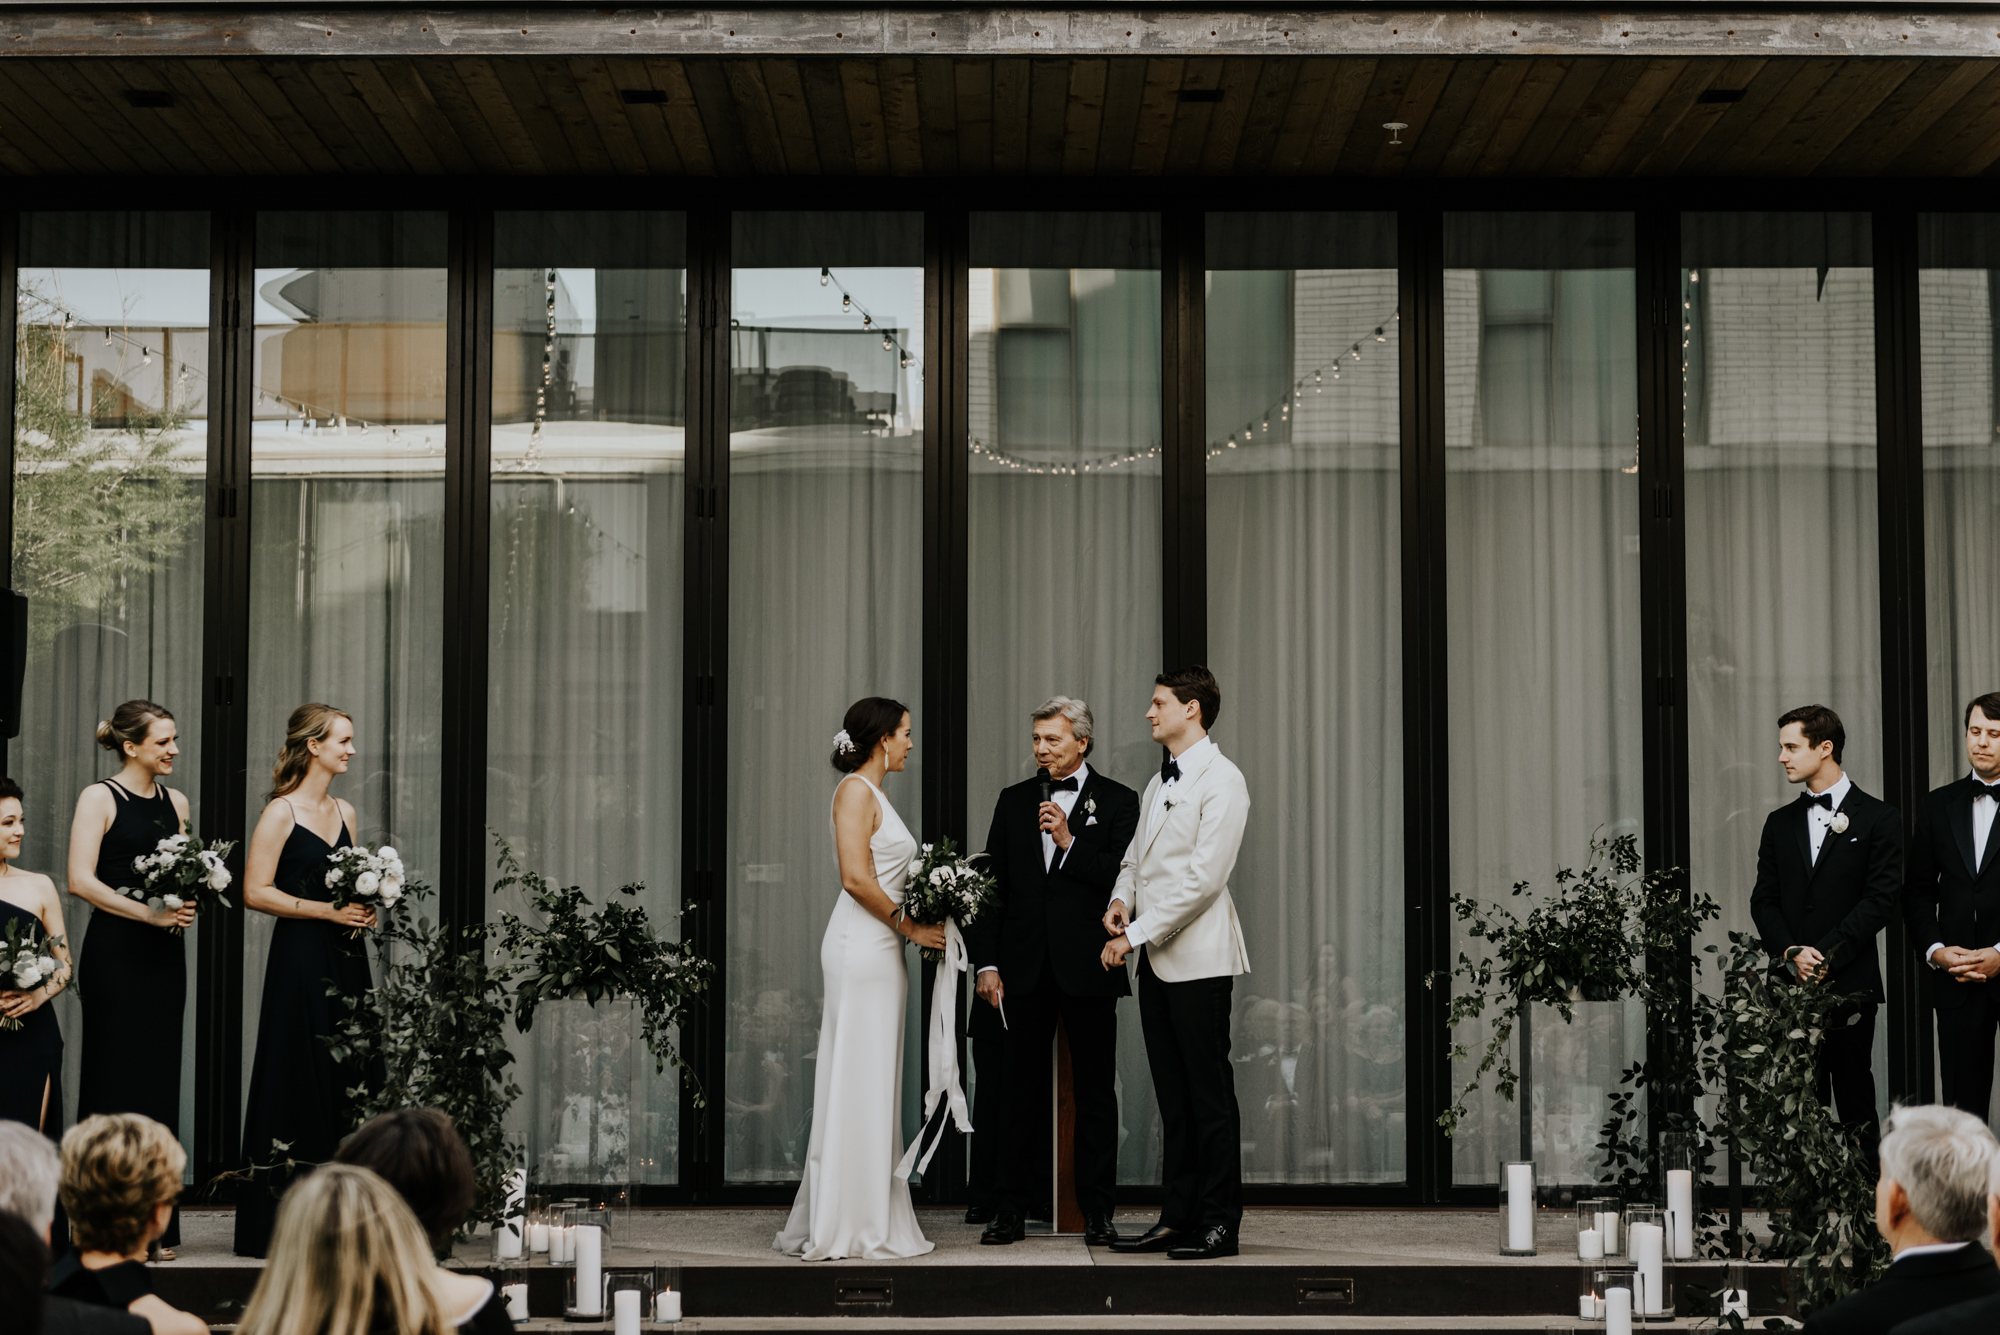 Intimate Wedding Ceremony Photos at South Congress Hotel in Austin, Texas